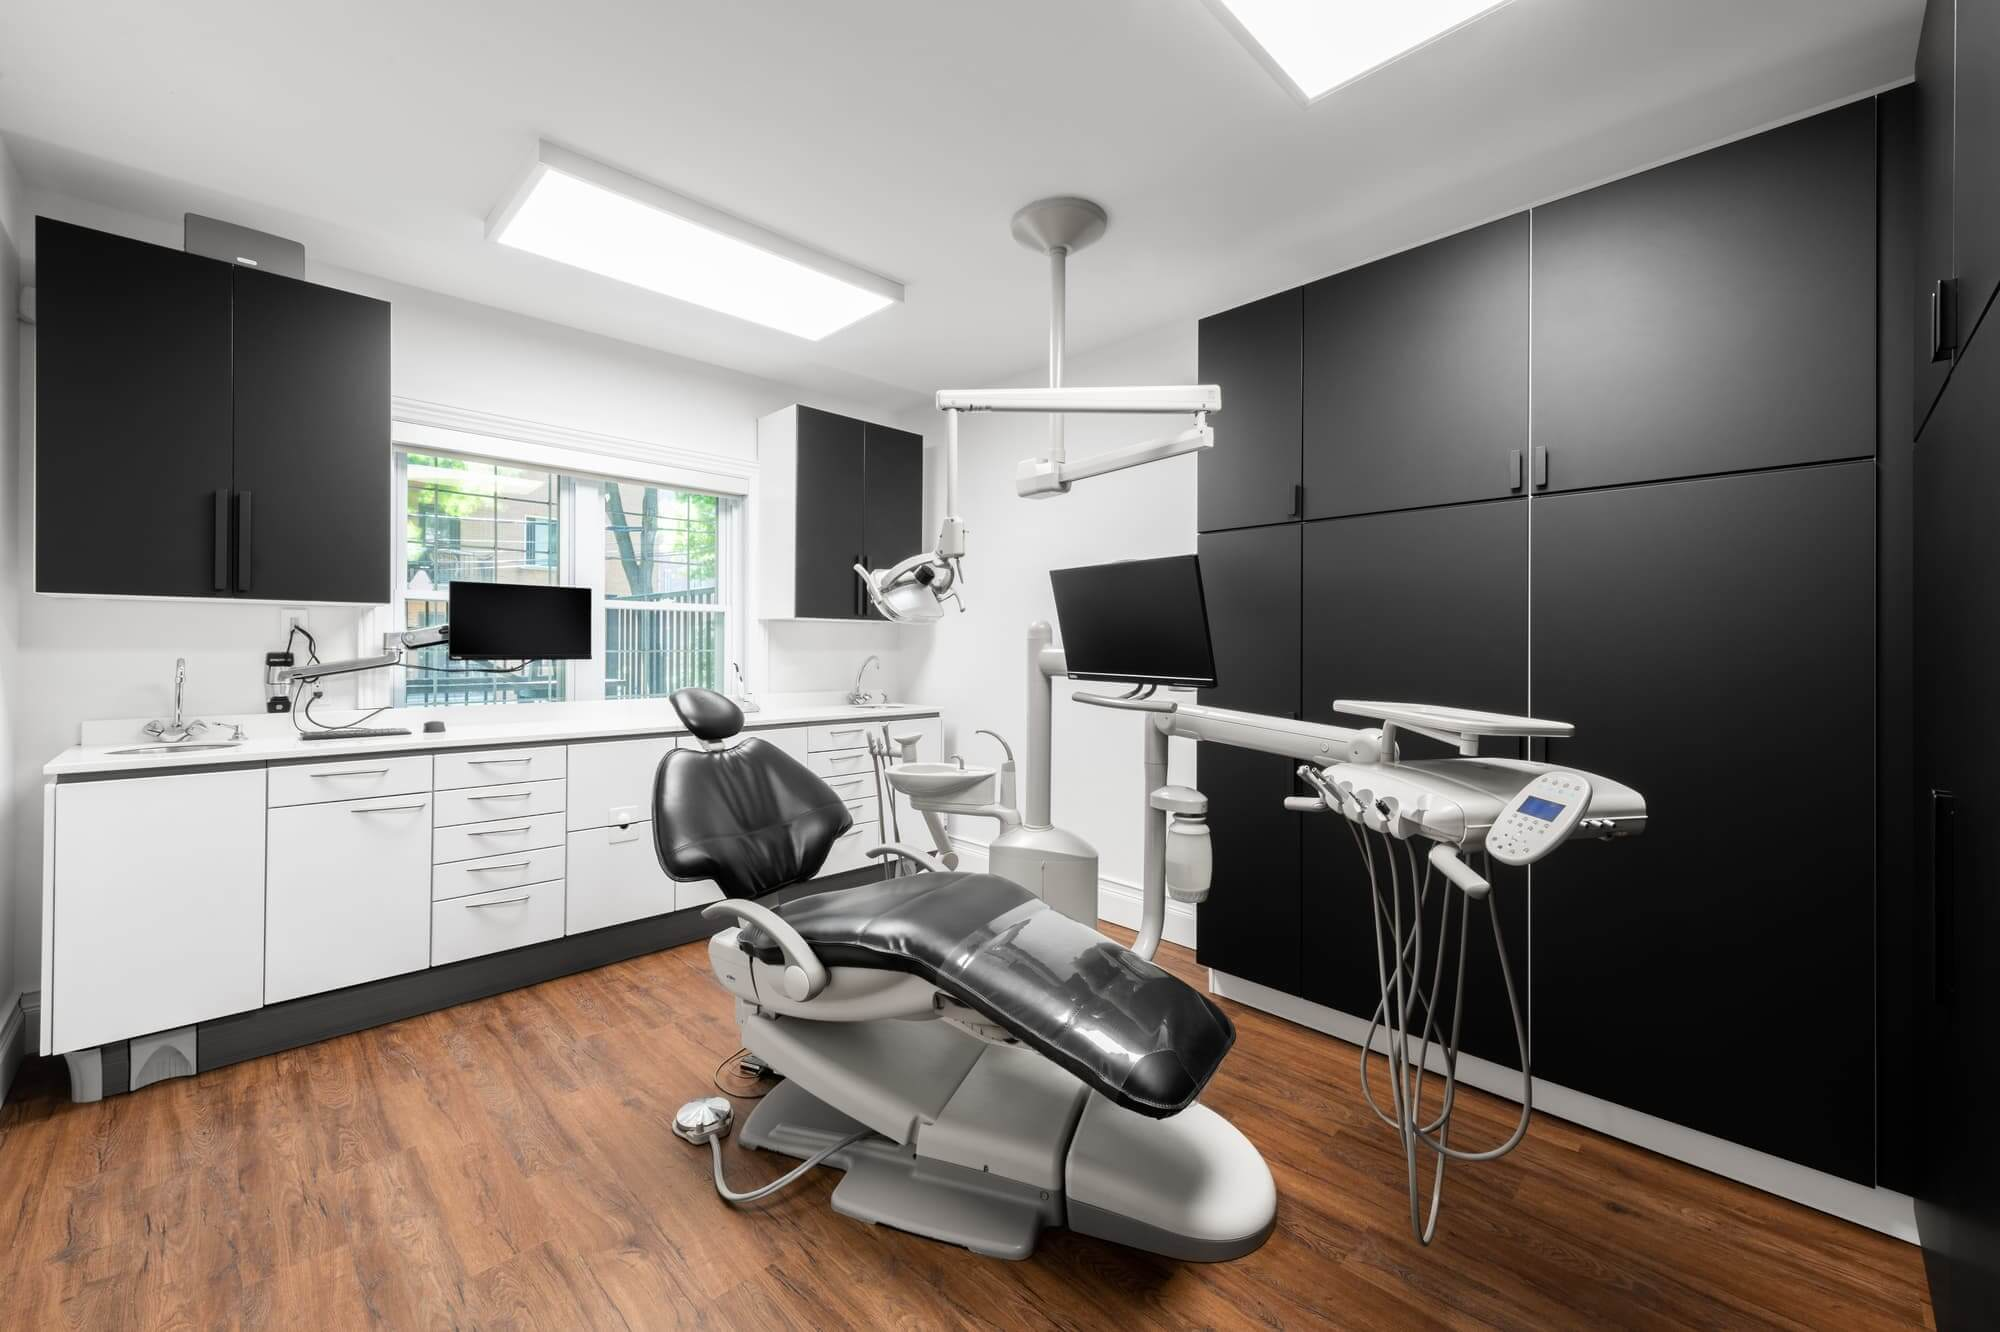 Treatment room in a newly renovated dental clinic - Contemporary style